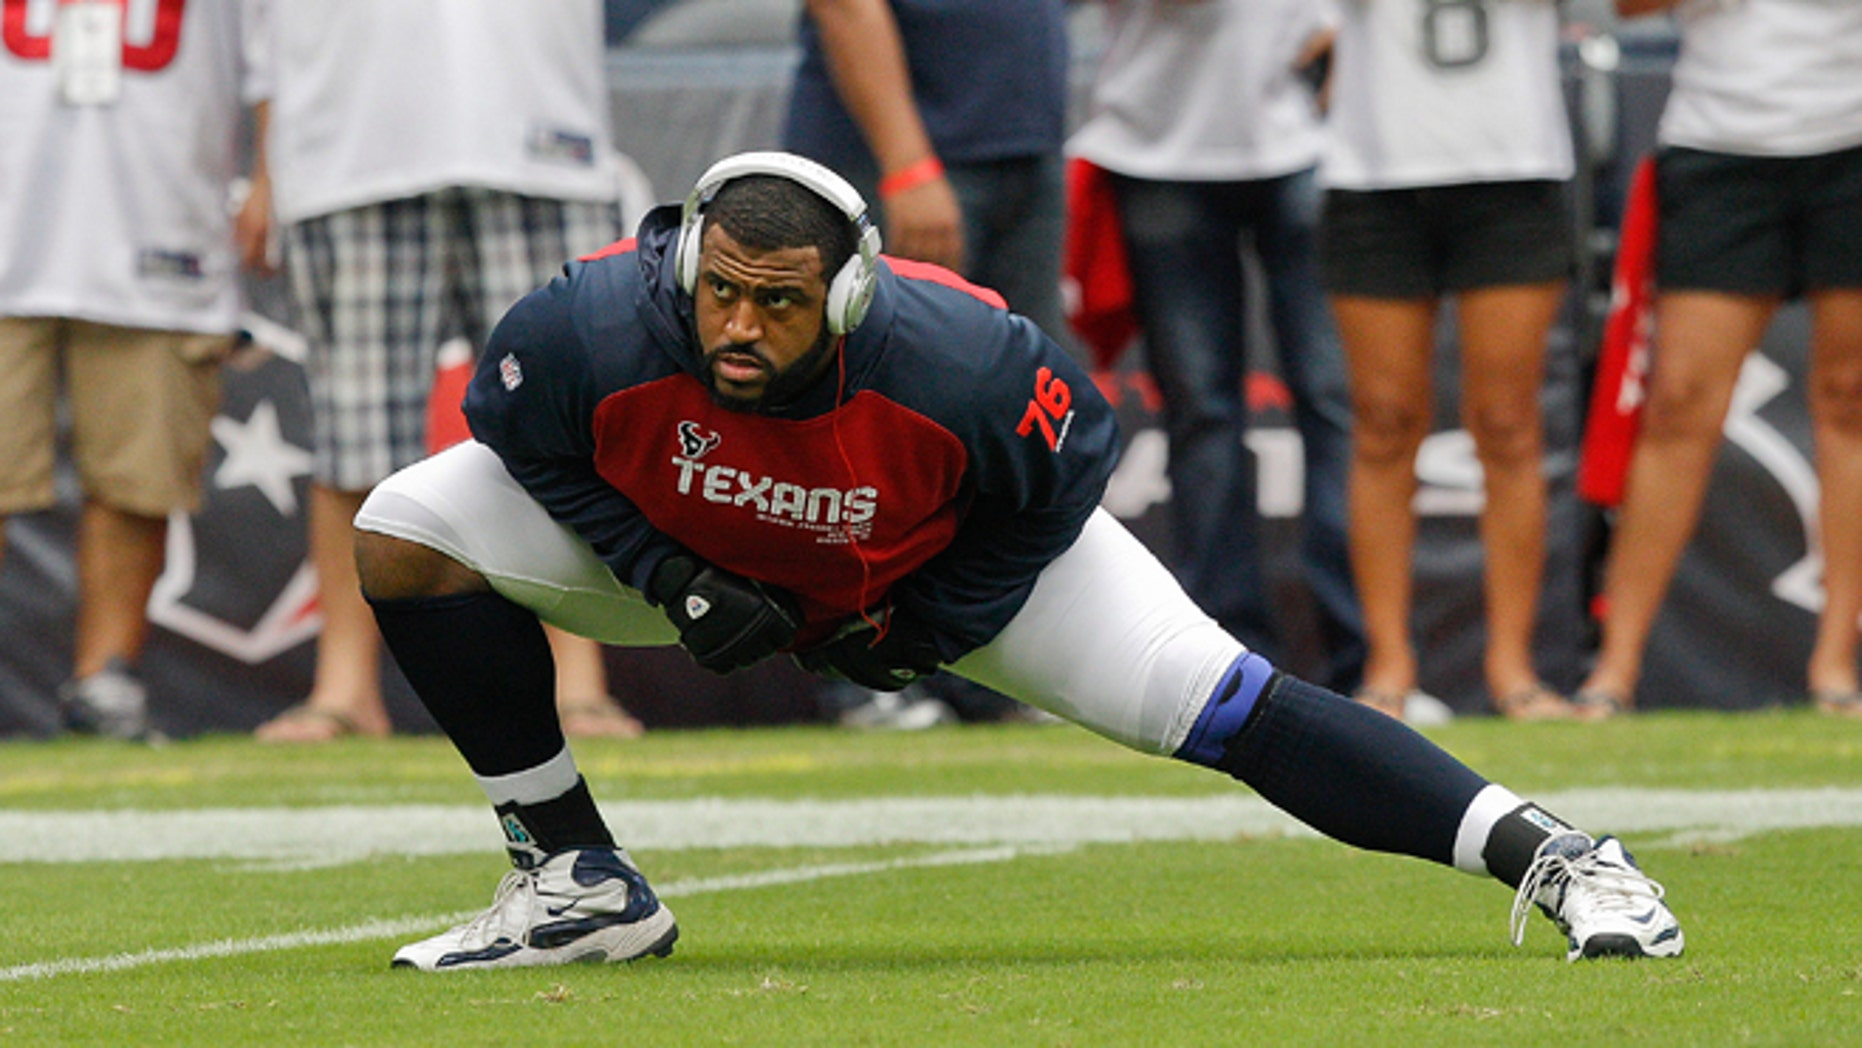 HOUSTON,TX - SEPTEMBER 09: Duane Brown #76 of the Houston Texans warms up prior to playing the Miami Dolphins during their season opener at Reliant Stadium on September 9, 2012 in Houston, Texas.  (Photo by Bob Levey/Getty Images)